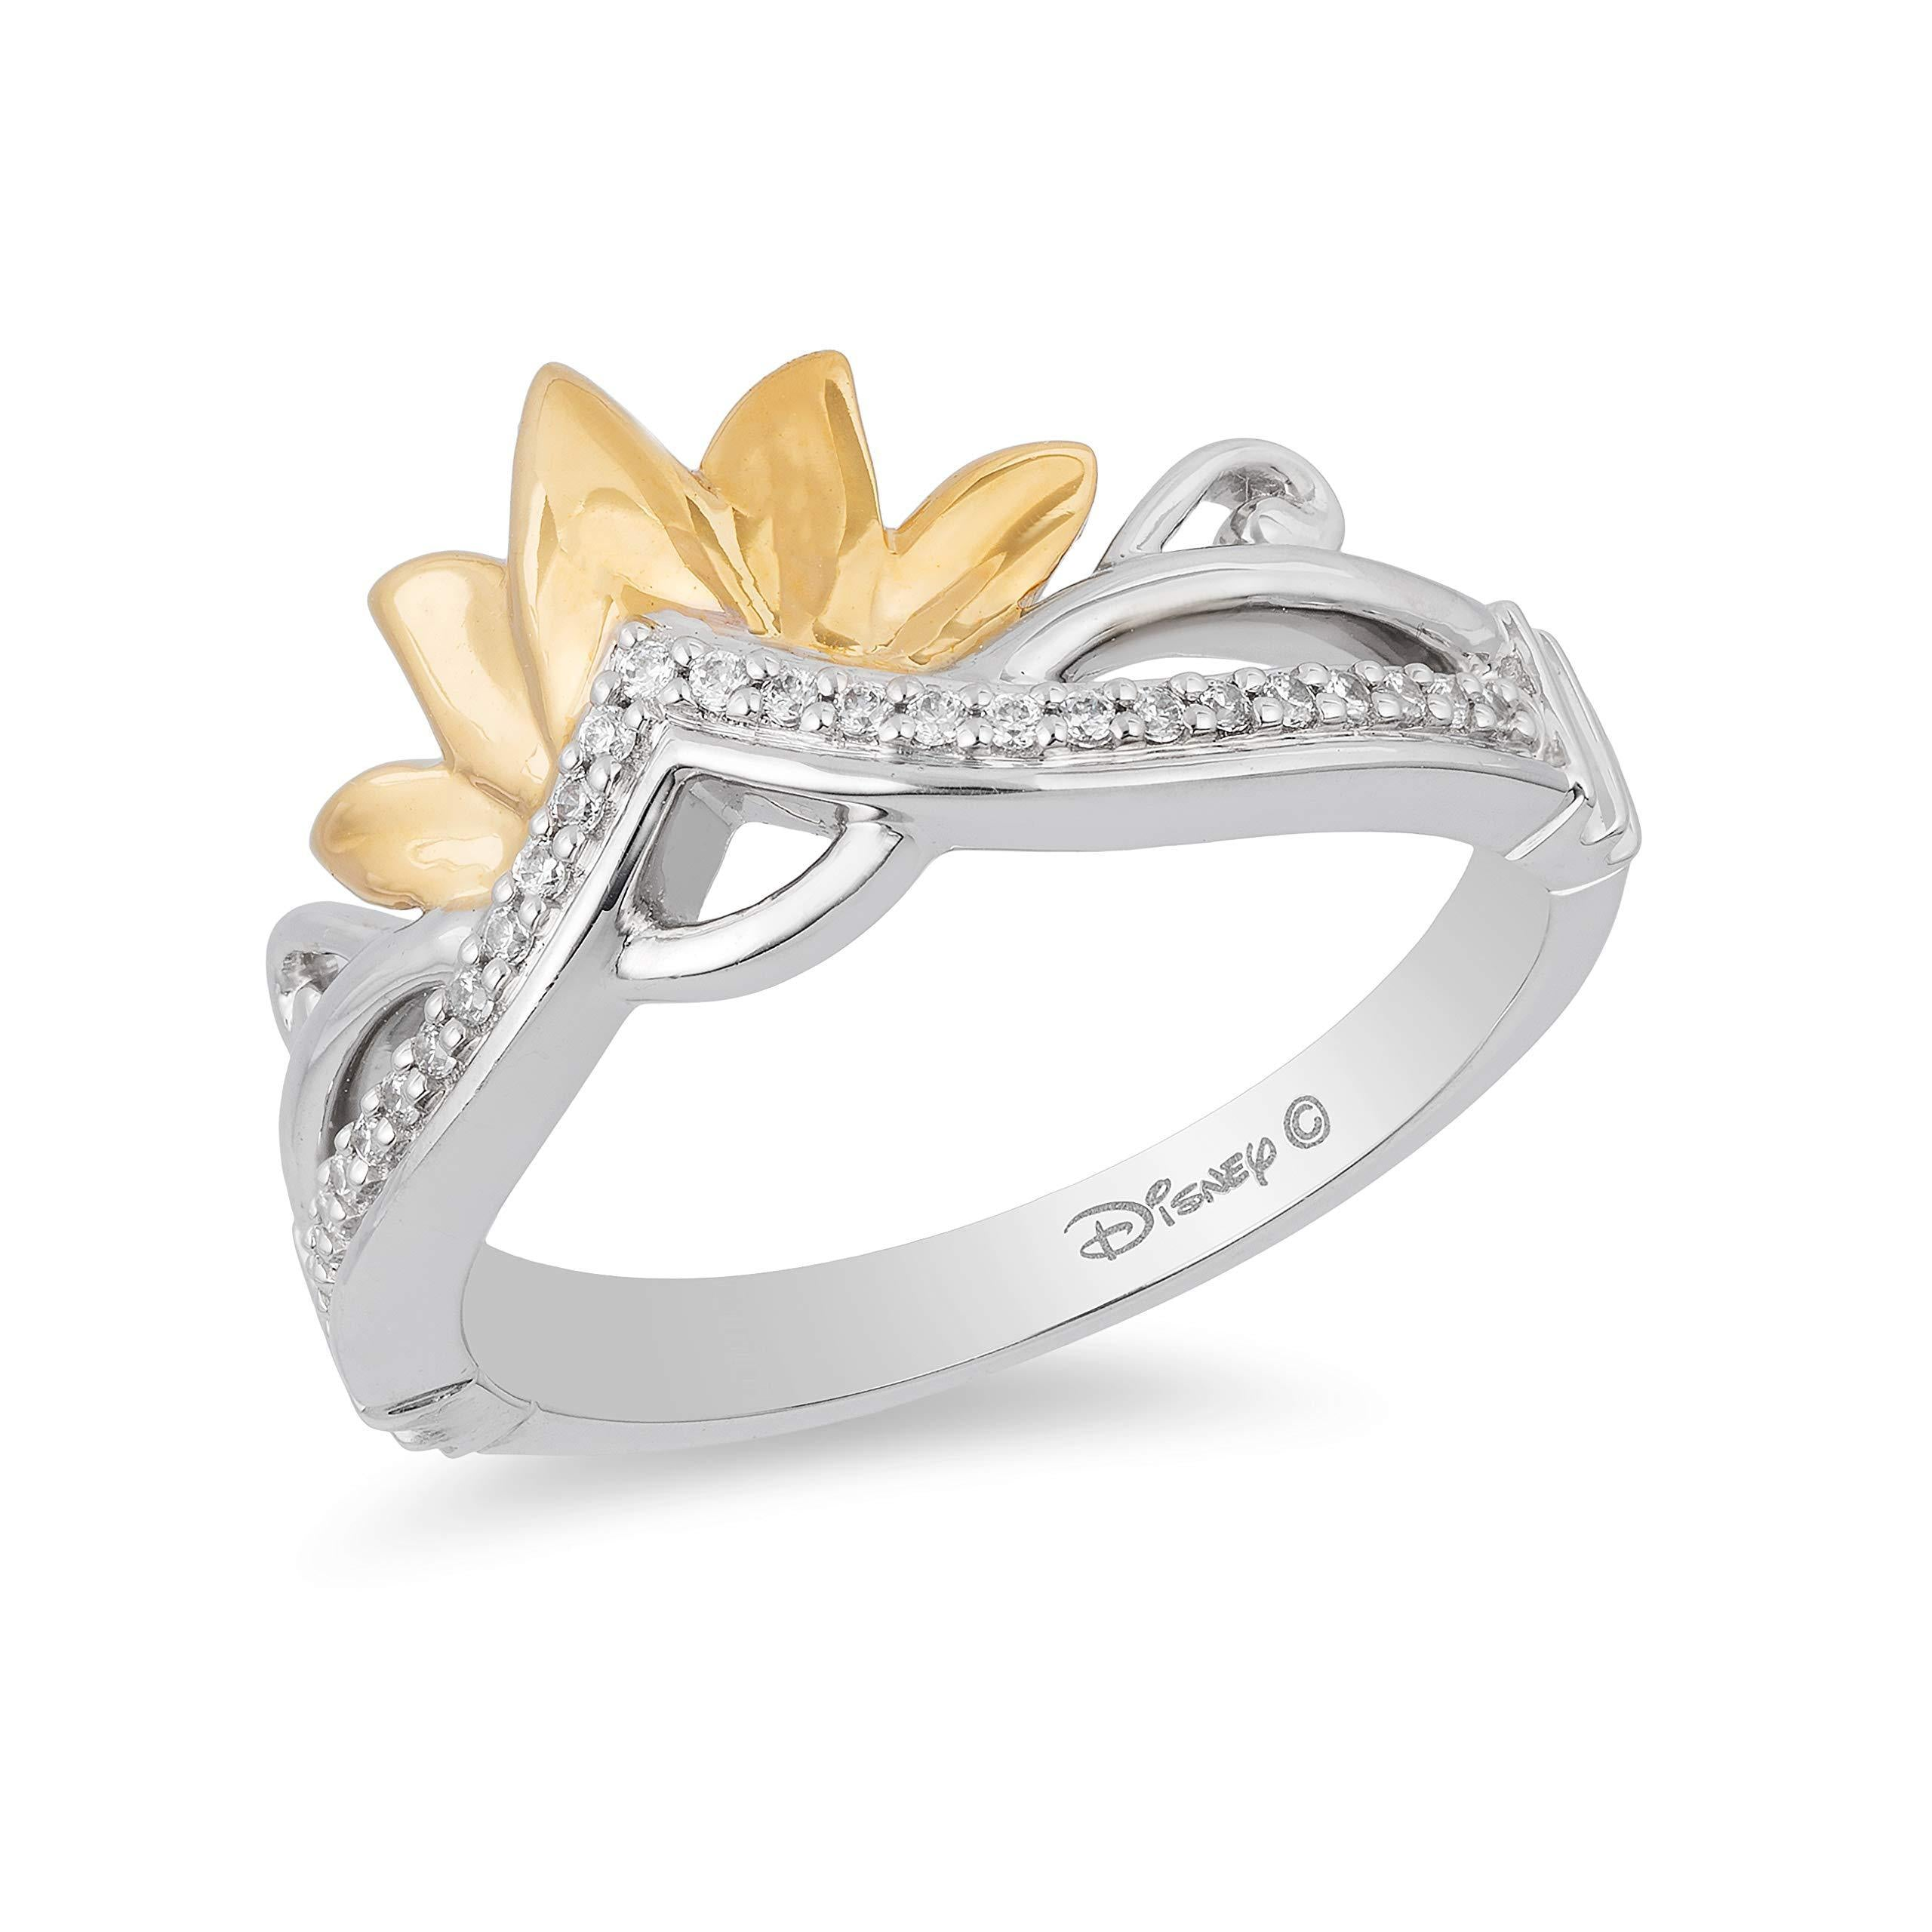 enchanted_disney-tiana_tiara_ring-9k_yellow_gold_and_sterling_silver_0.10CTTW_2